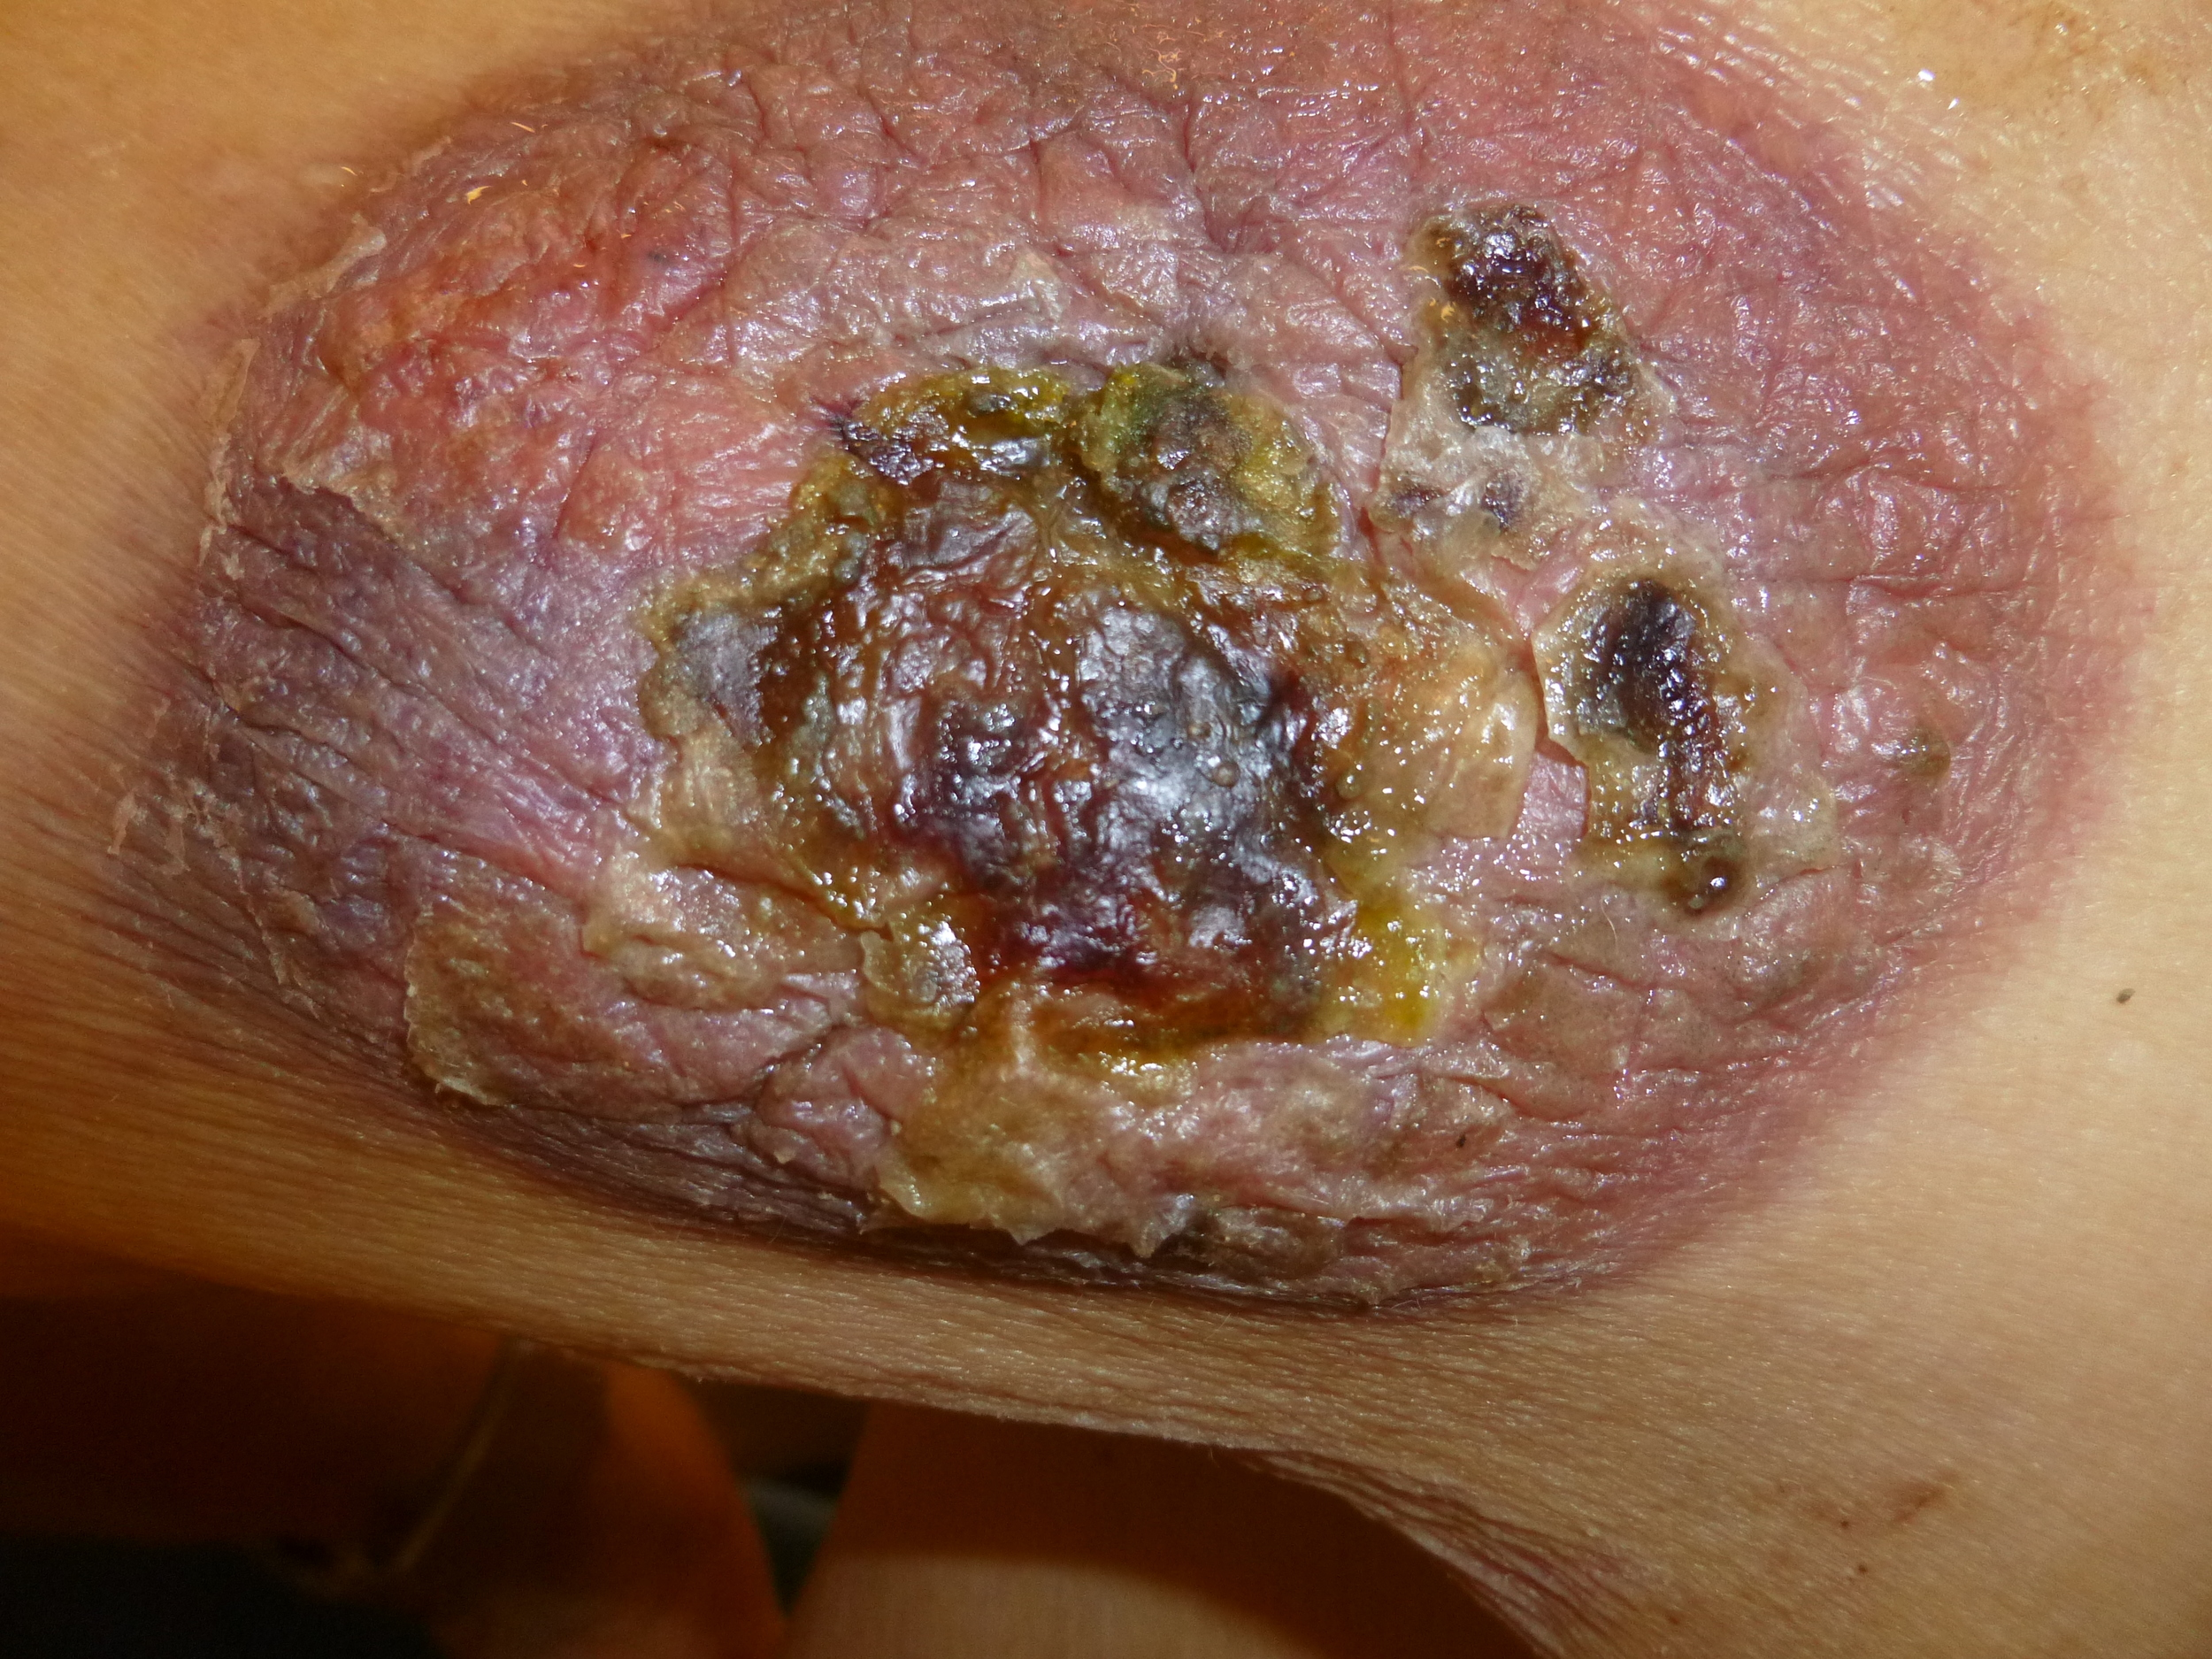 UNDER CHEMOTHERAPY    TUMOUR IS DISSOLVING - HEALING CONTINUES